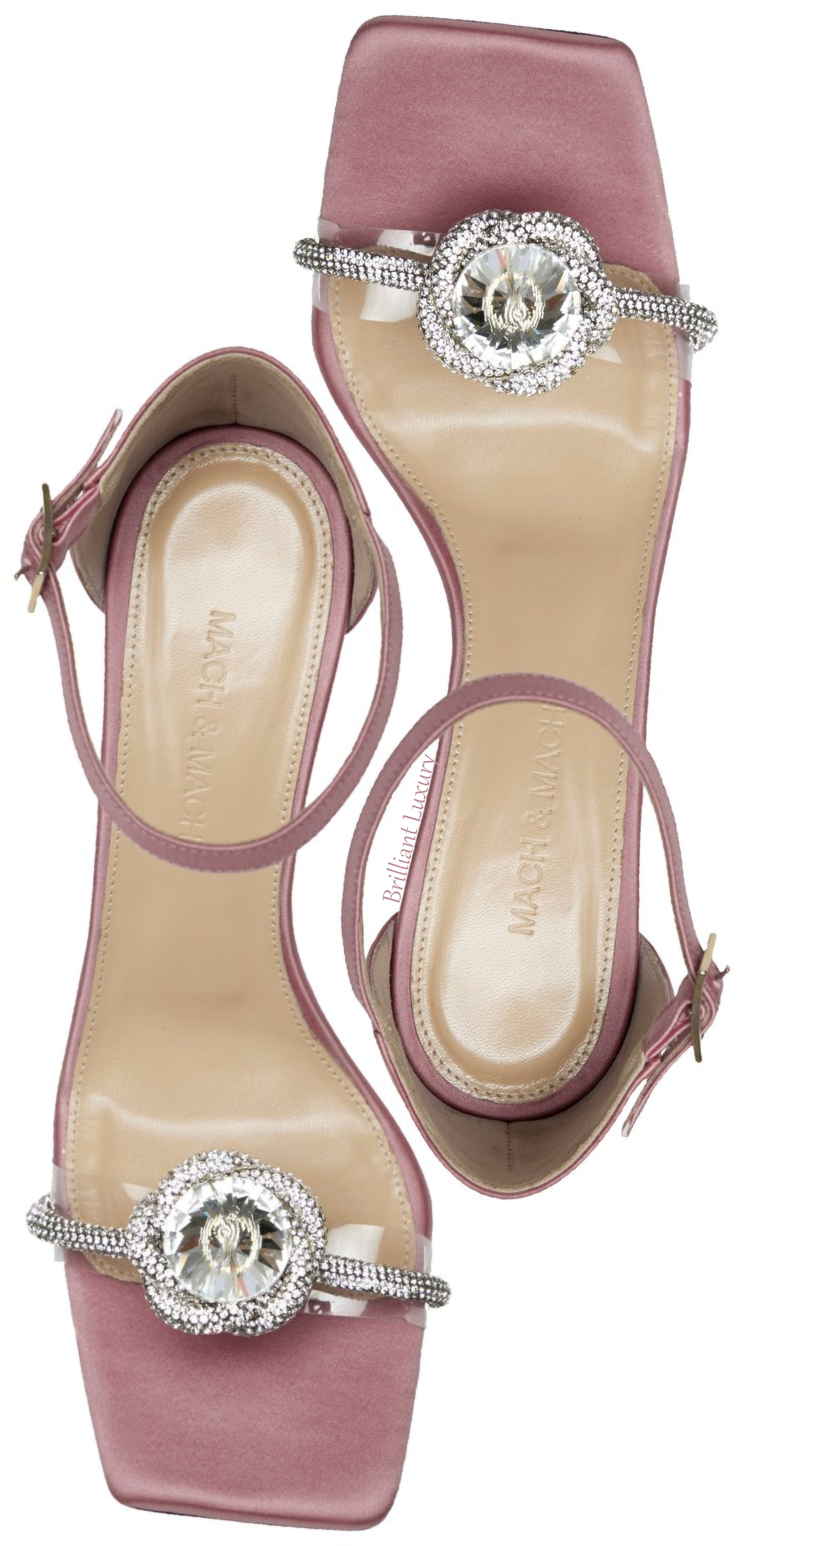 Mach & Mach light pink Rosie crystal satin sandal #brilliantluxury